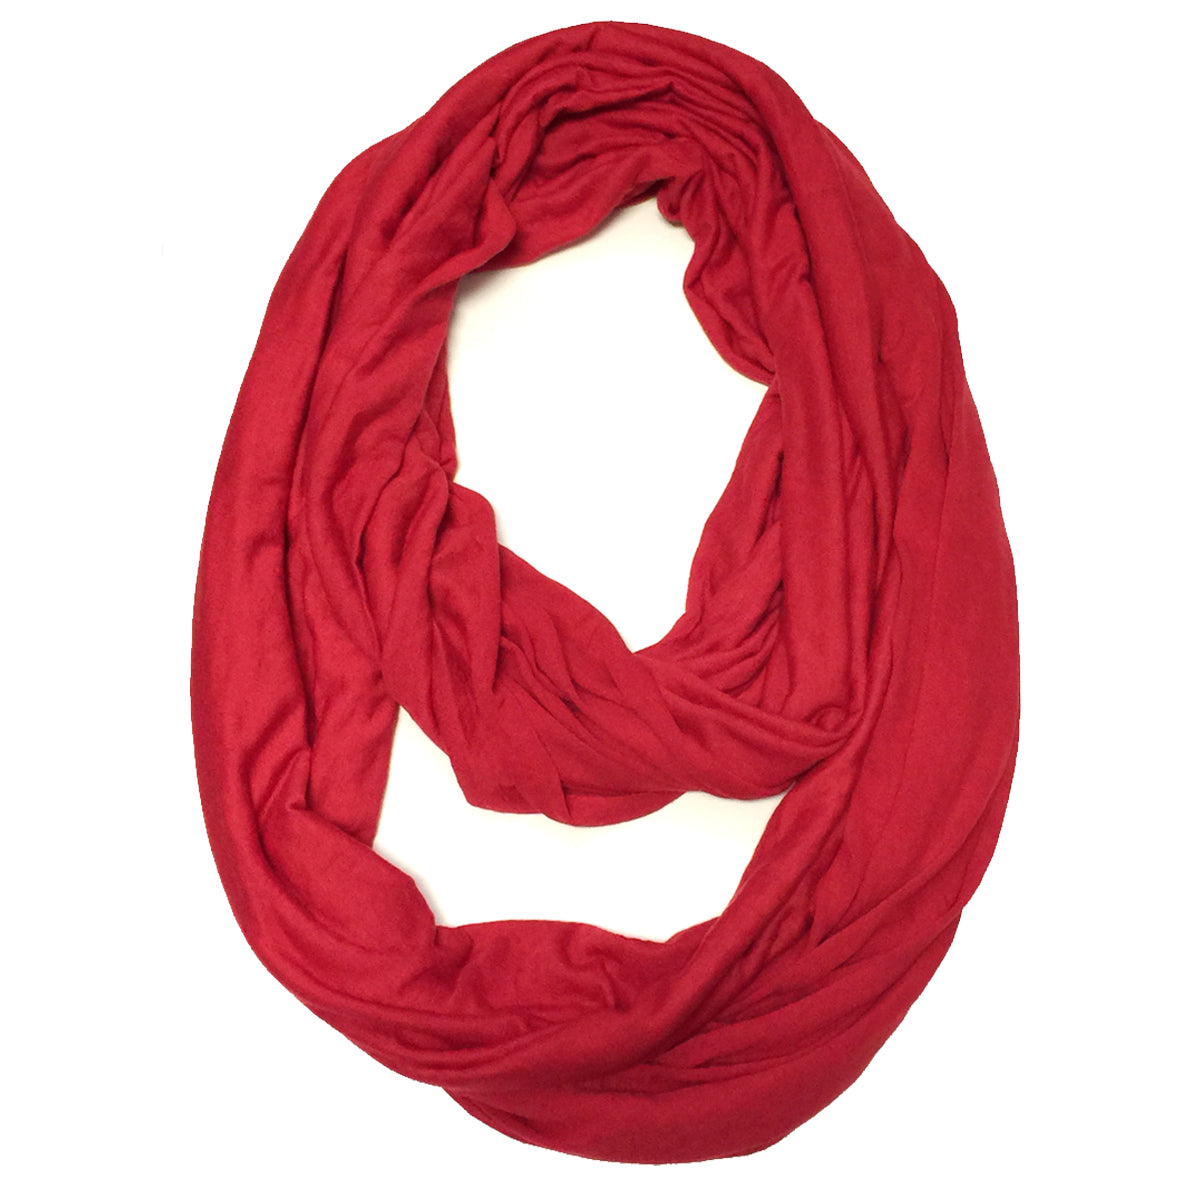 Wrapables Soft Jersey Knit Infinity Scarf